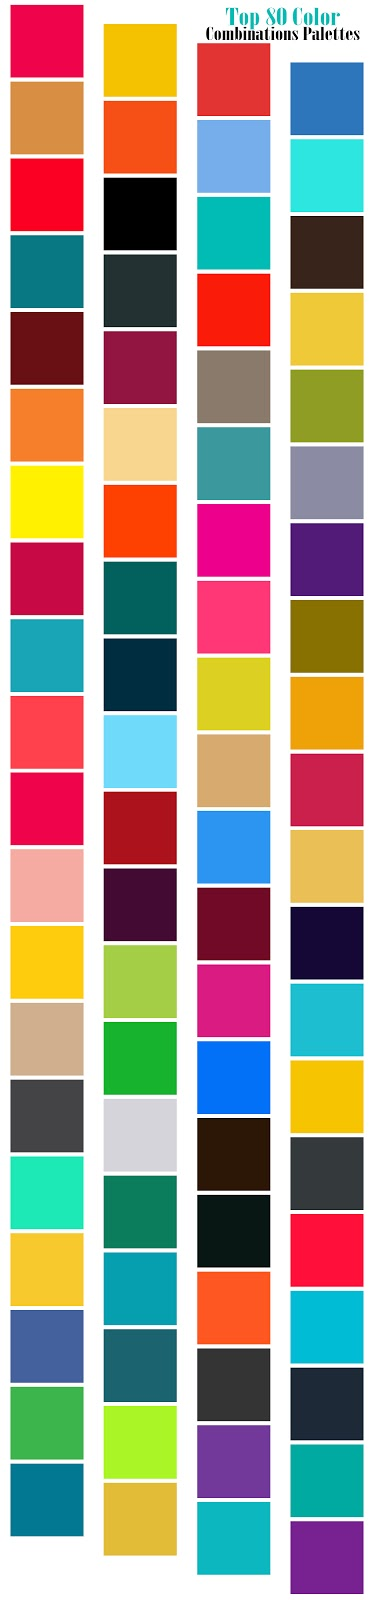 A Designer Tool For Creating Color Combinations That Work Together Well